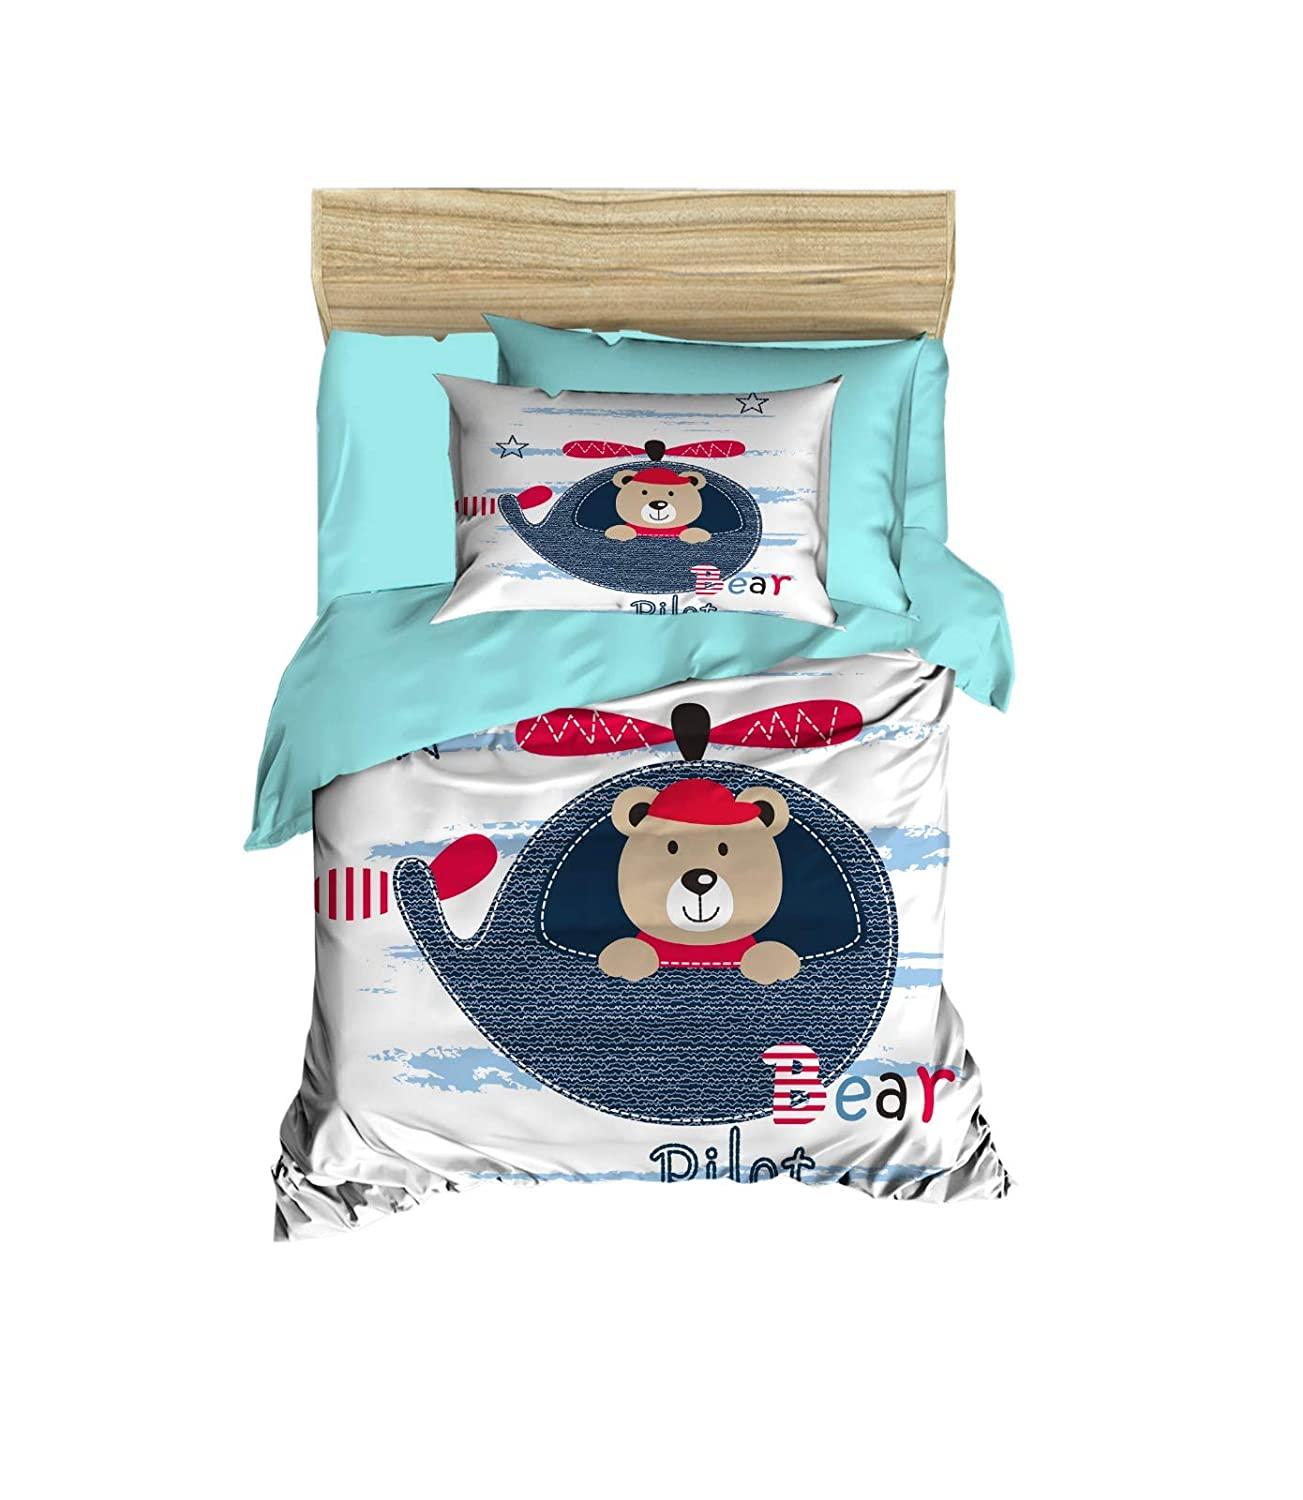 100% Cotton Baby Bedding Pilot Bear Themed Nursery Baby Bed Set, Toddlers Crib Bedding for Baby Boys, Duvet Cover Set with Comforter, 5 Pieces